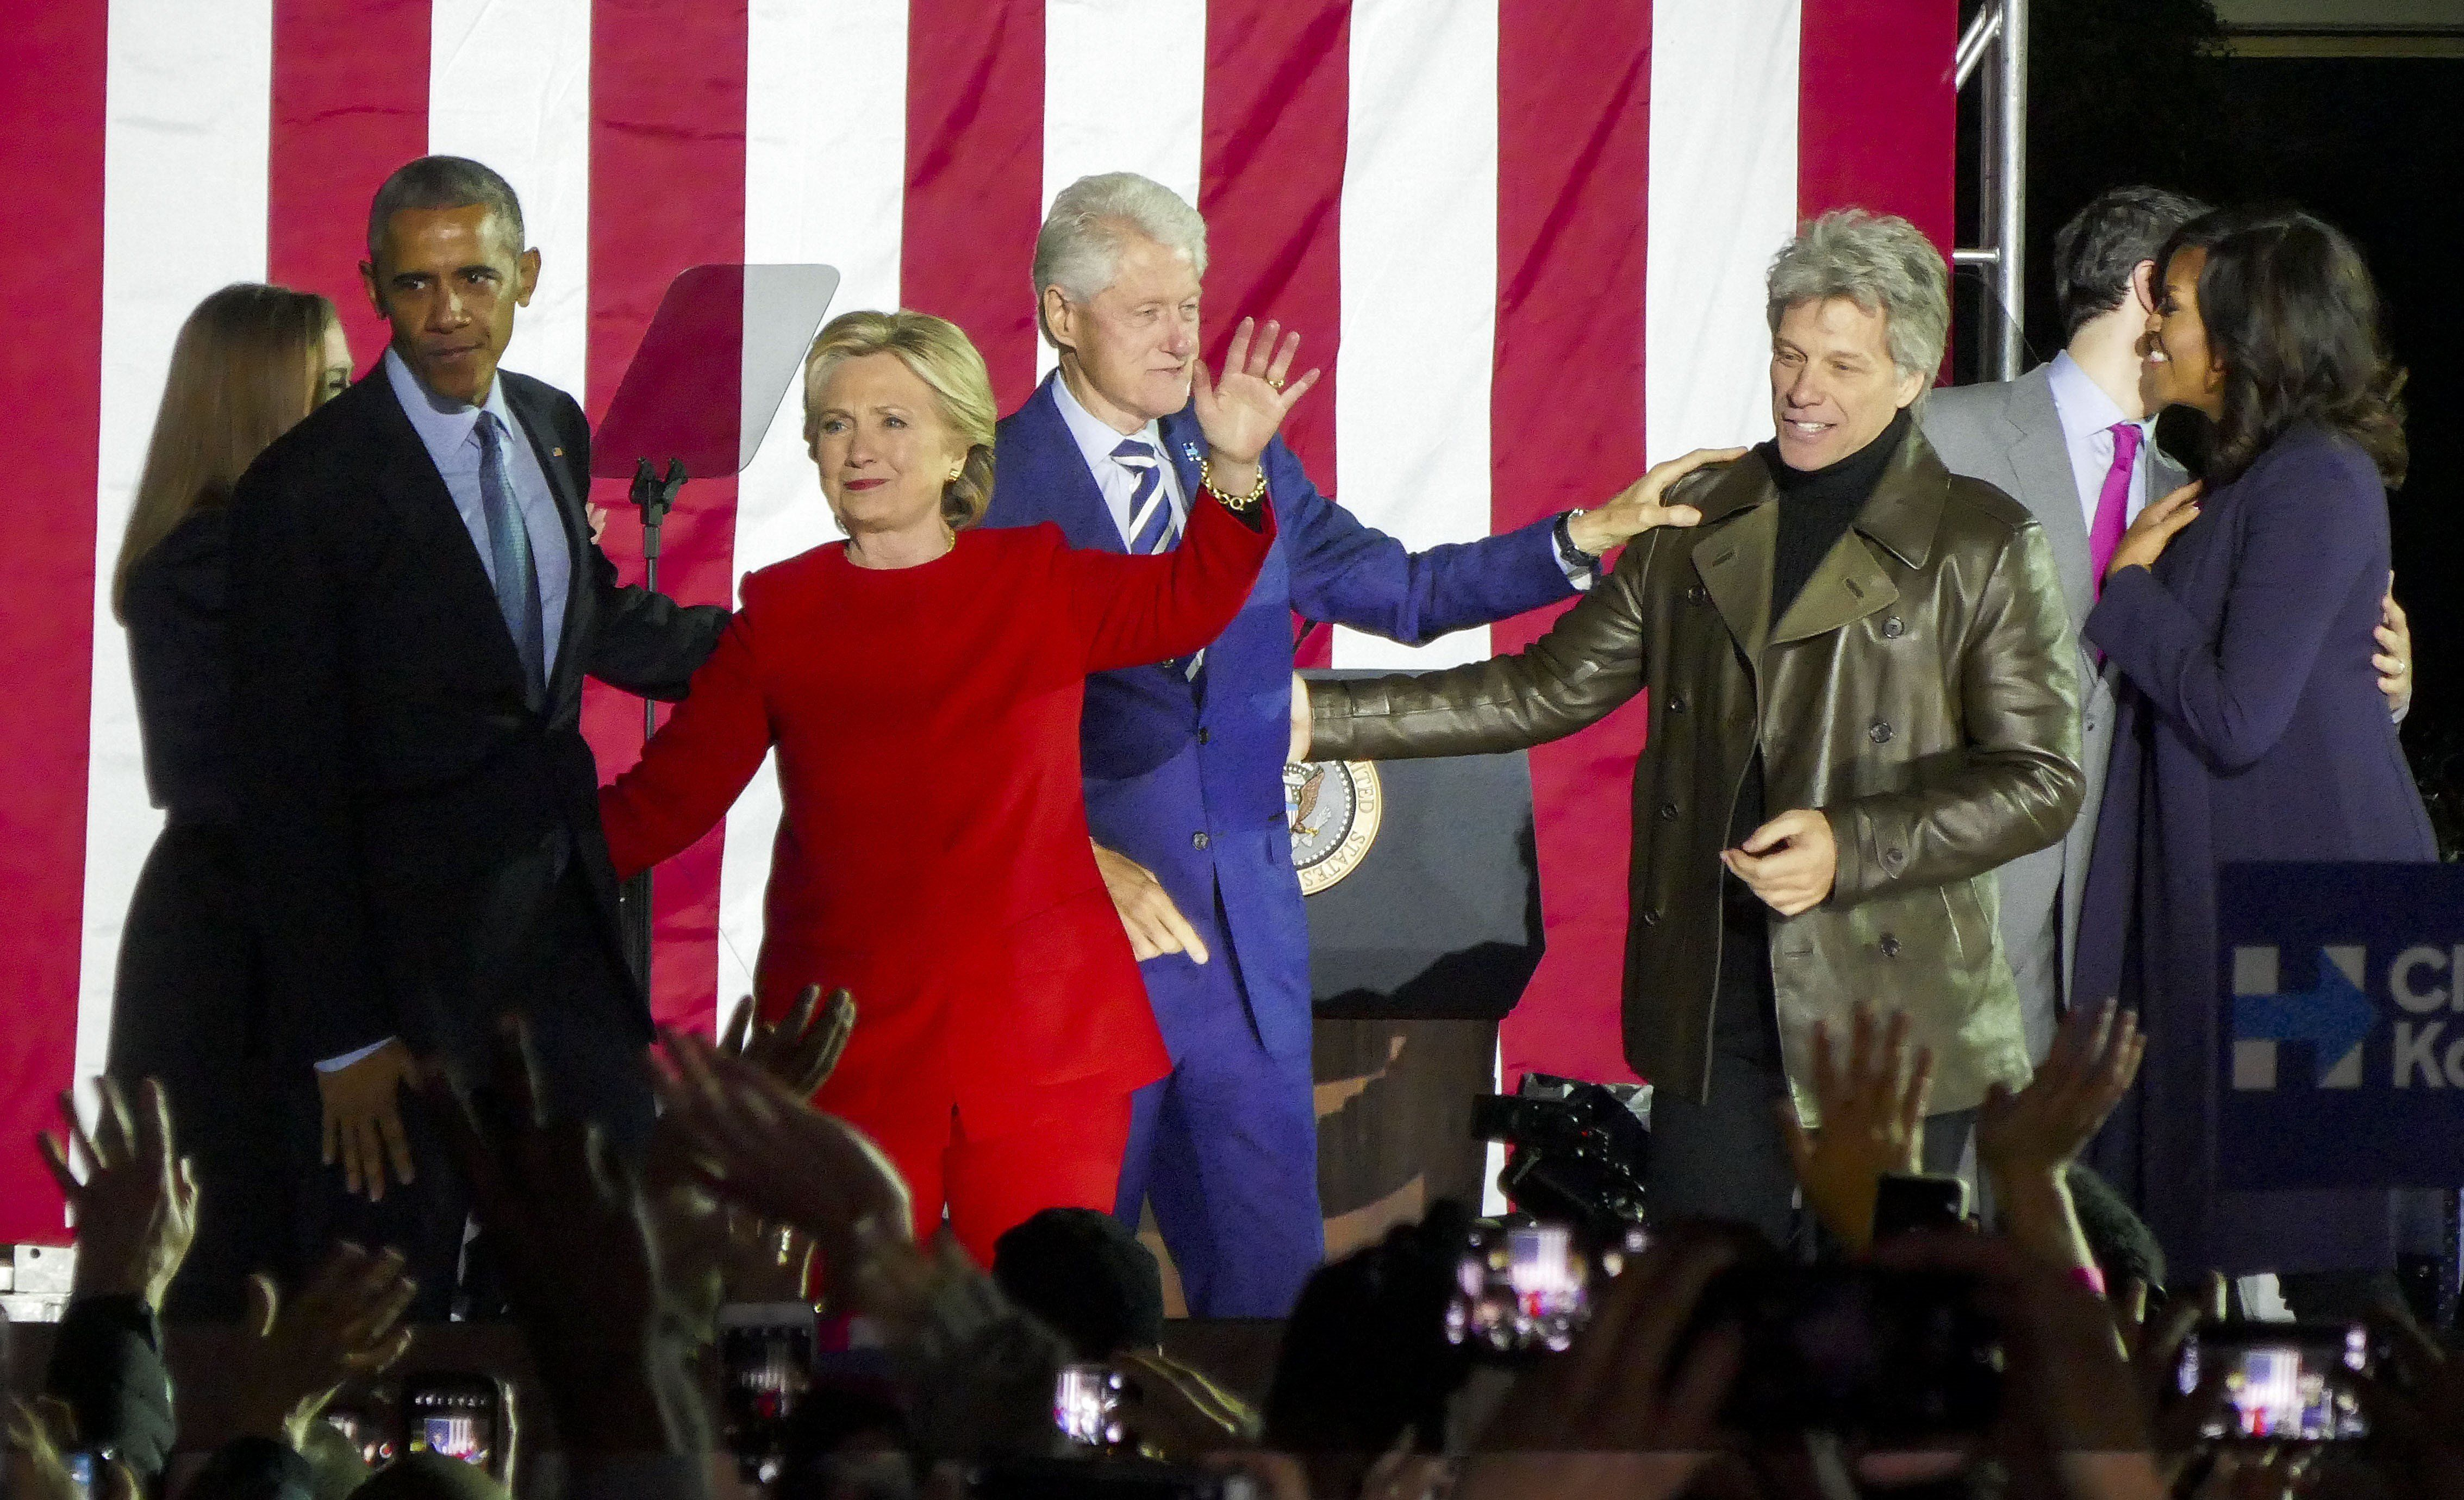 PHILADELPHIA, UNITED STATES - NOVEMBER 7: US Democratic presidential candidate Hillary Clinton (3rd L), her husband former US president Bill Clinton (C), their daughter Chelsea Clinton (L), US President Barack Obama (2nd L), his wife Michelle Obama (R) and singer Jon Bon Jovi (2nd R) participate Hillary Clinton's final 2016 US presidential campaign in Philadelphia, Pennsylvania, November 7, 2016. (Photo by Selcuk Acar/Anadolu Agency/Getty Images)